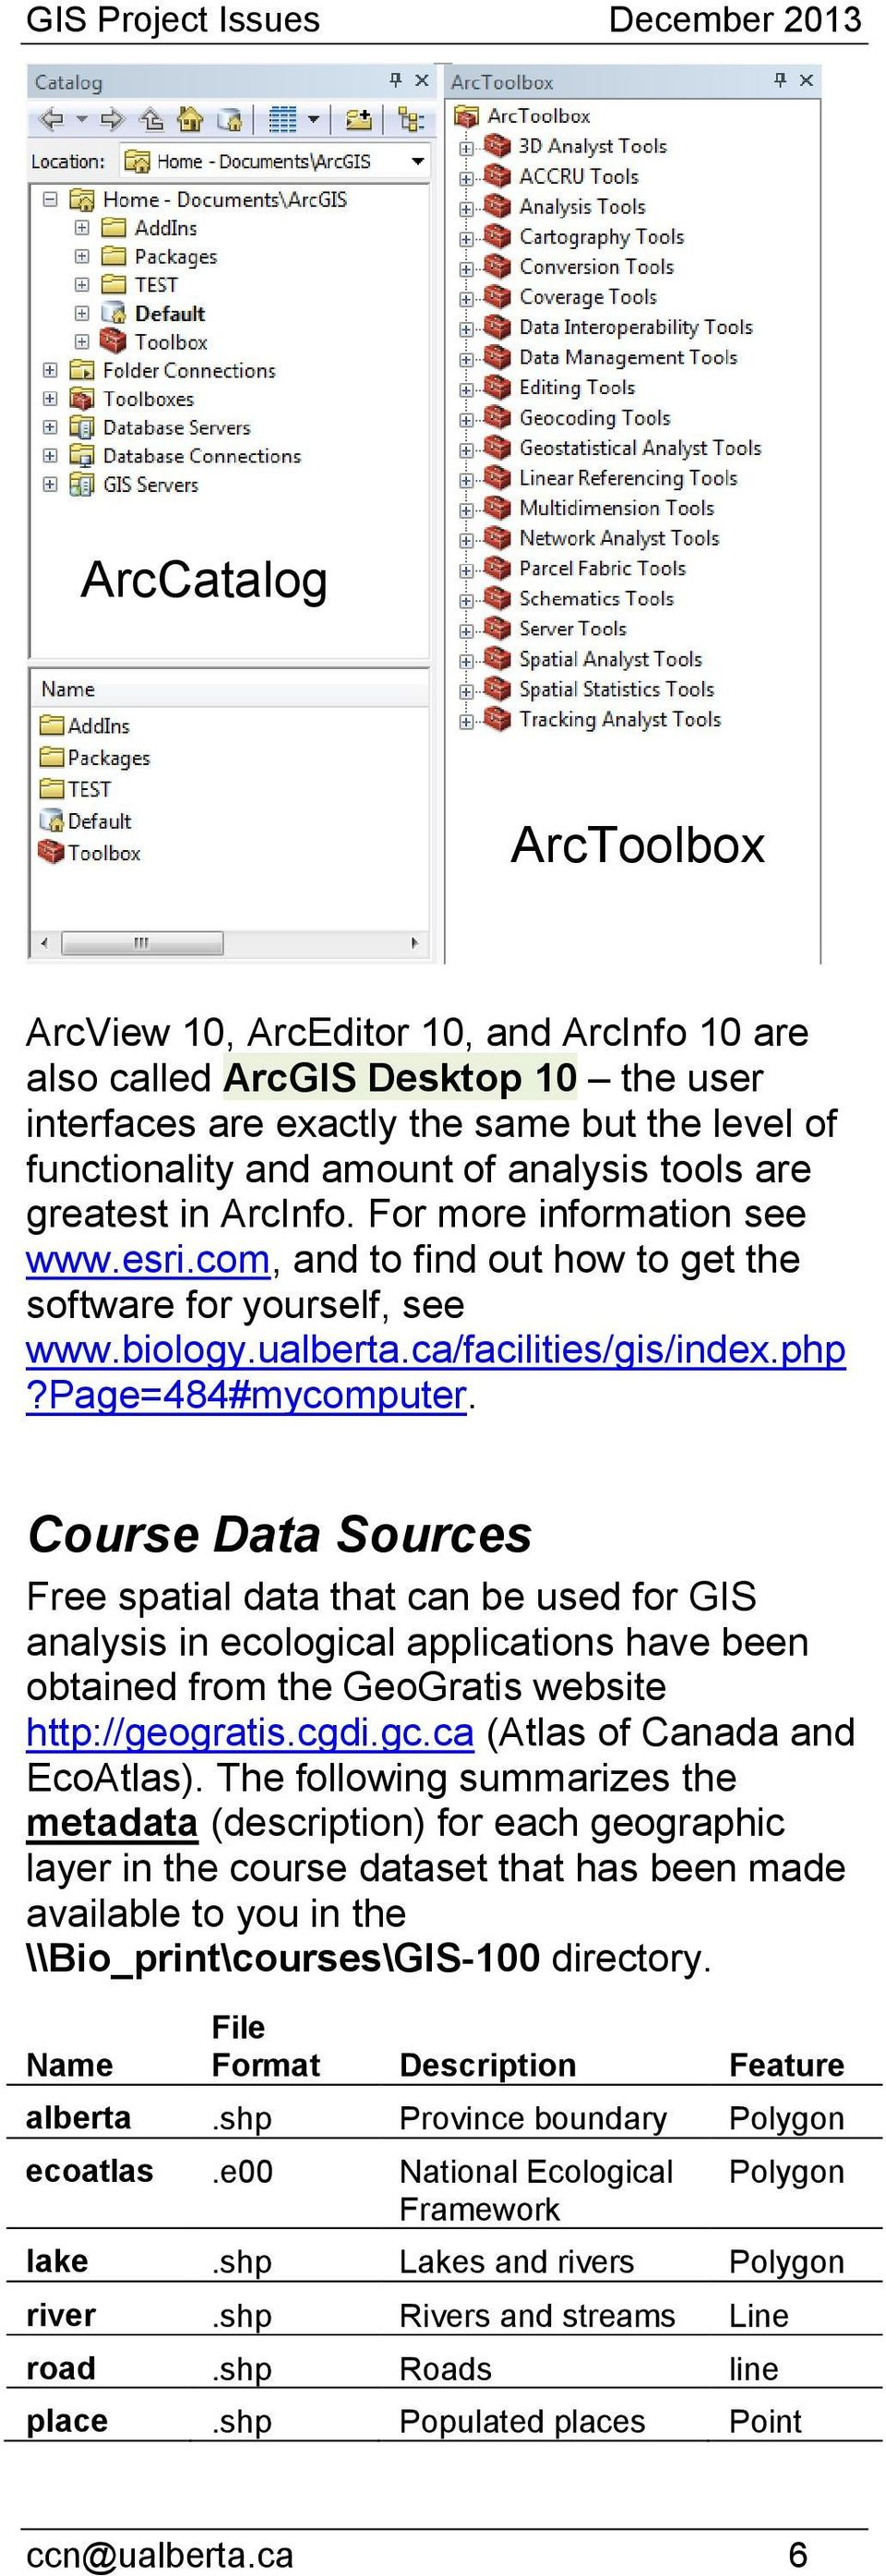 Course Data Sources Free spatial data that can be used for GIS analysis in ecological applications have been obtained from the GeoGratis website http://geogratis.cgdi.gc.